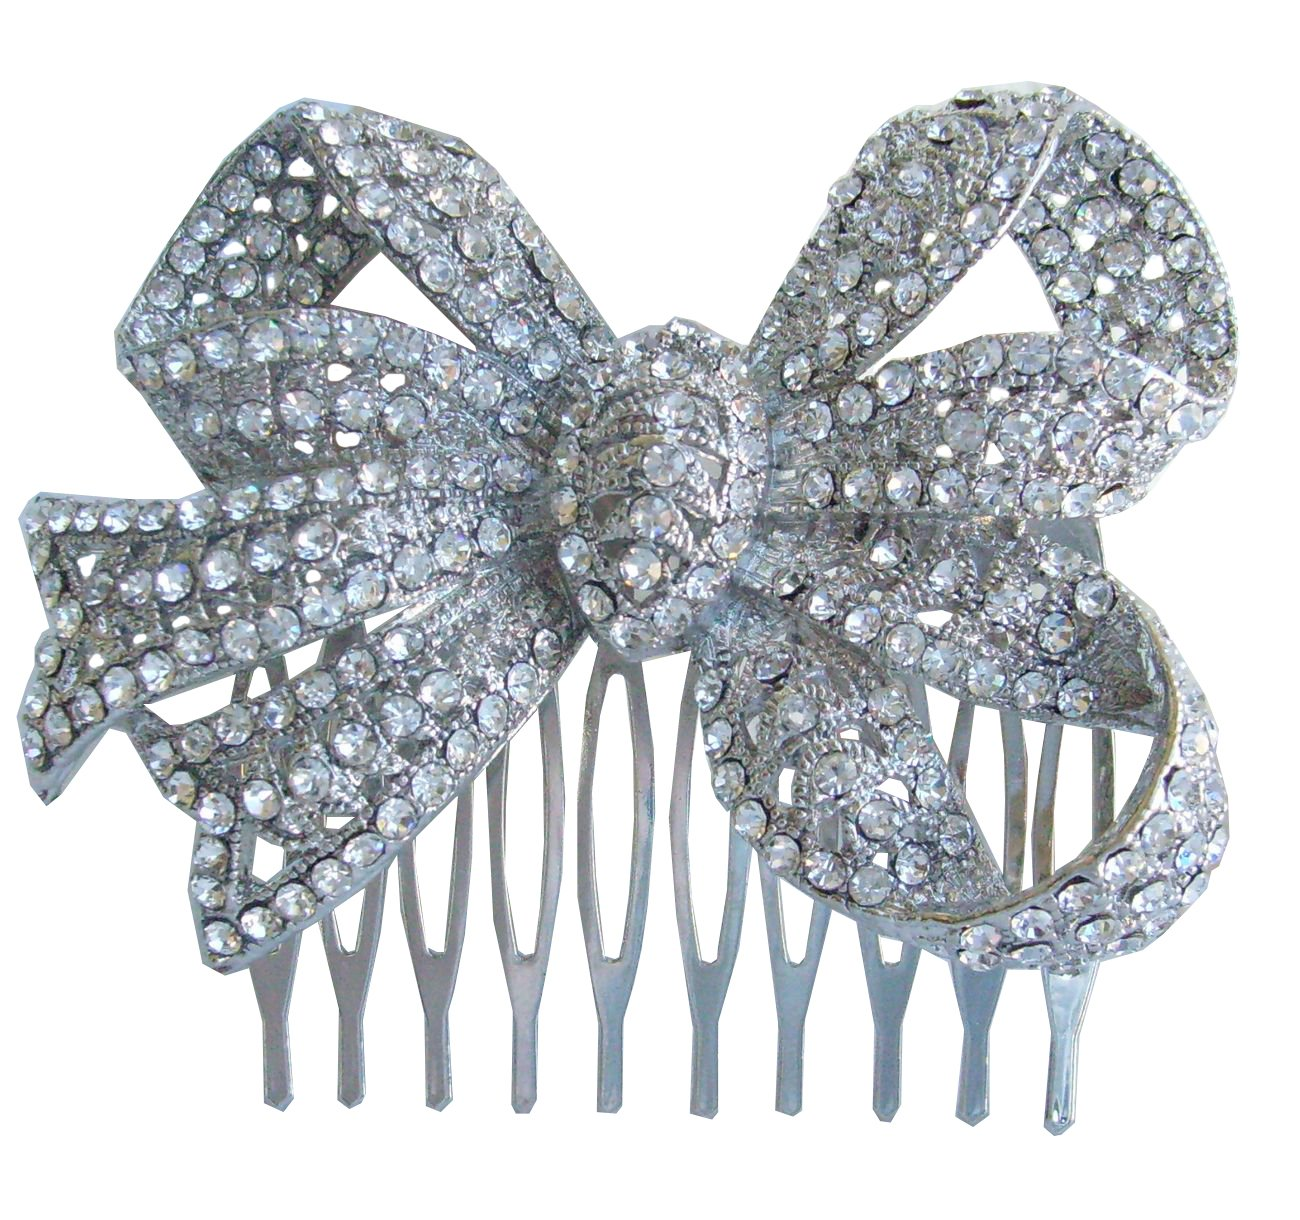 Sindary Wedding Headpiece Silver-tone Clear Rhinestone Crystal Bowknot Hair Comb